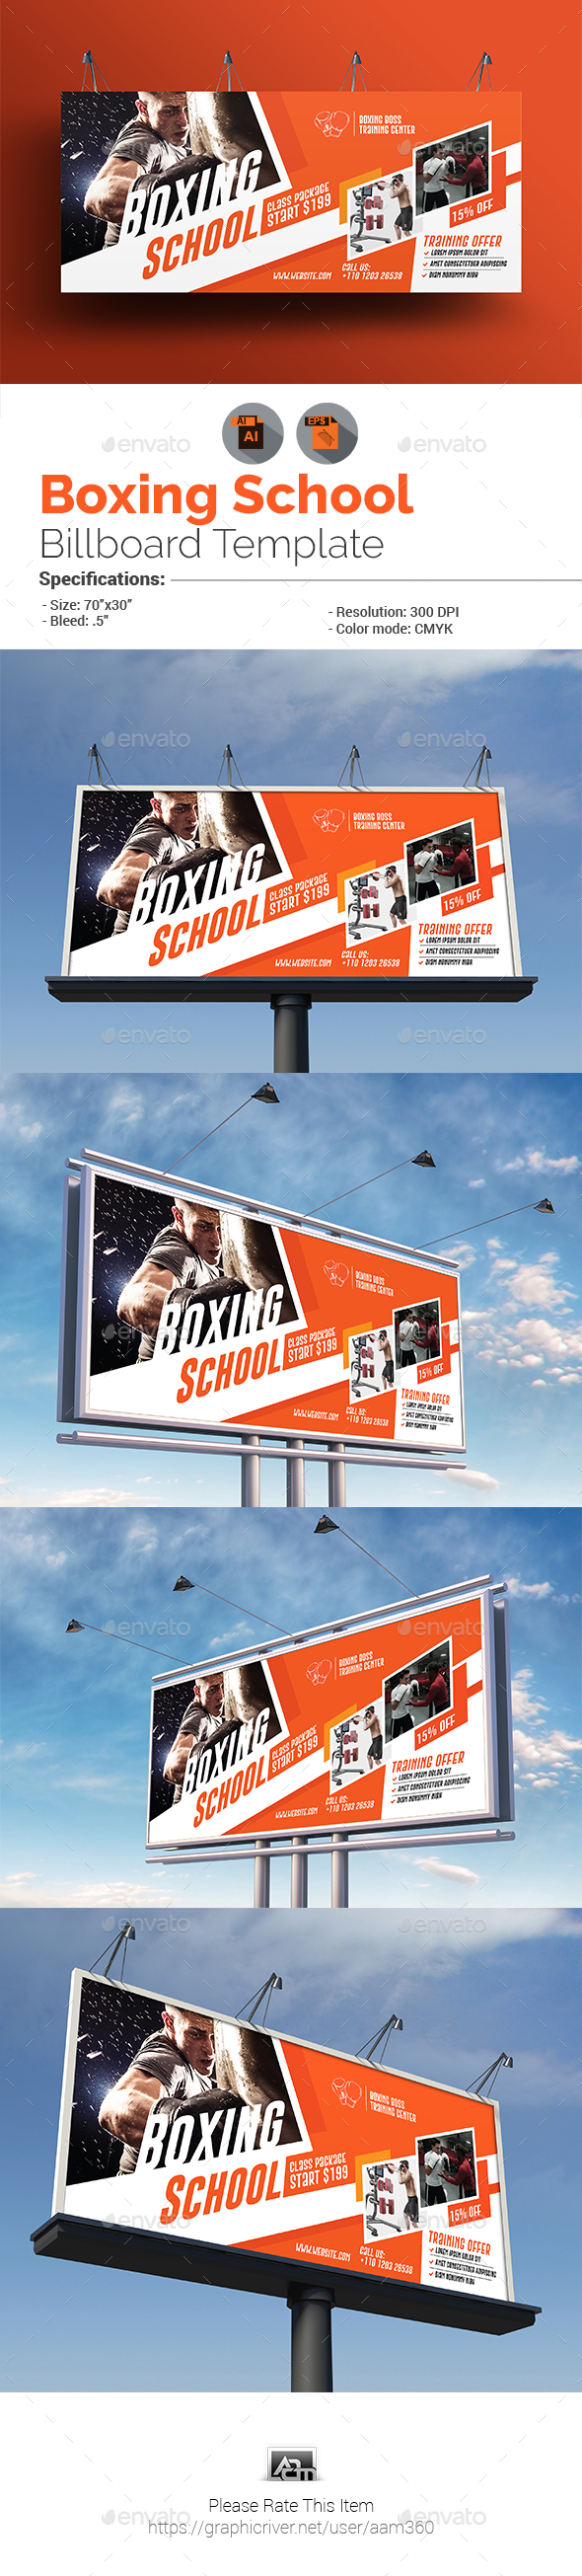 Boxing School Billboard Template - Signage Print Templates